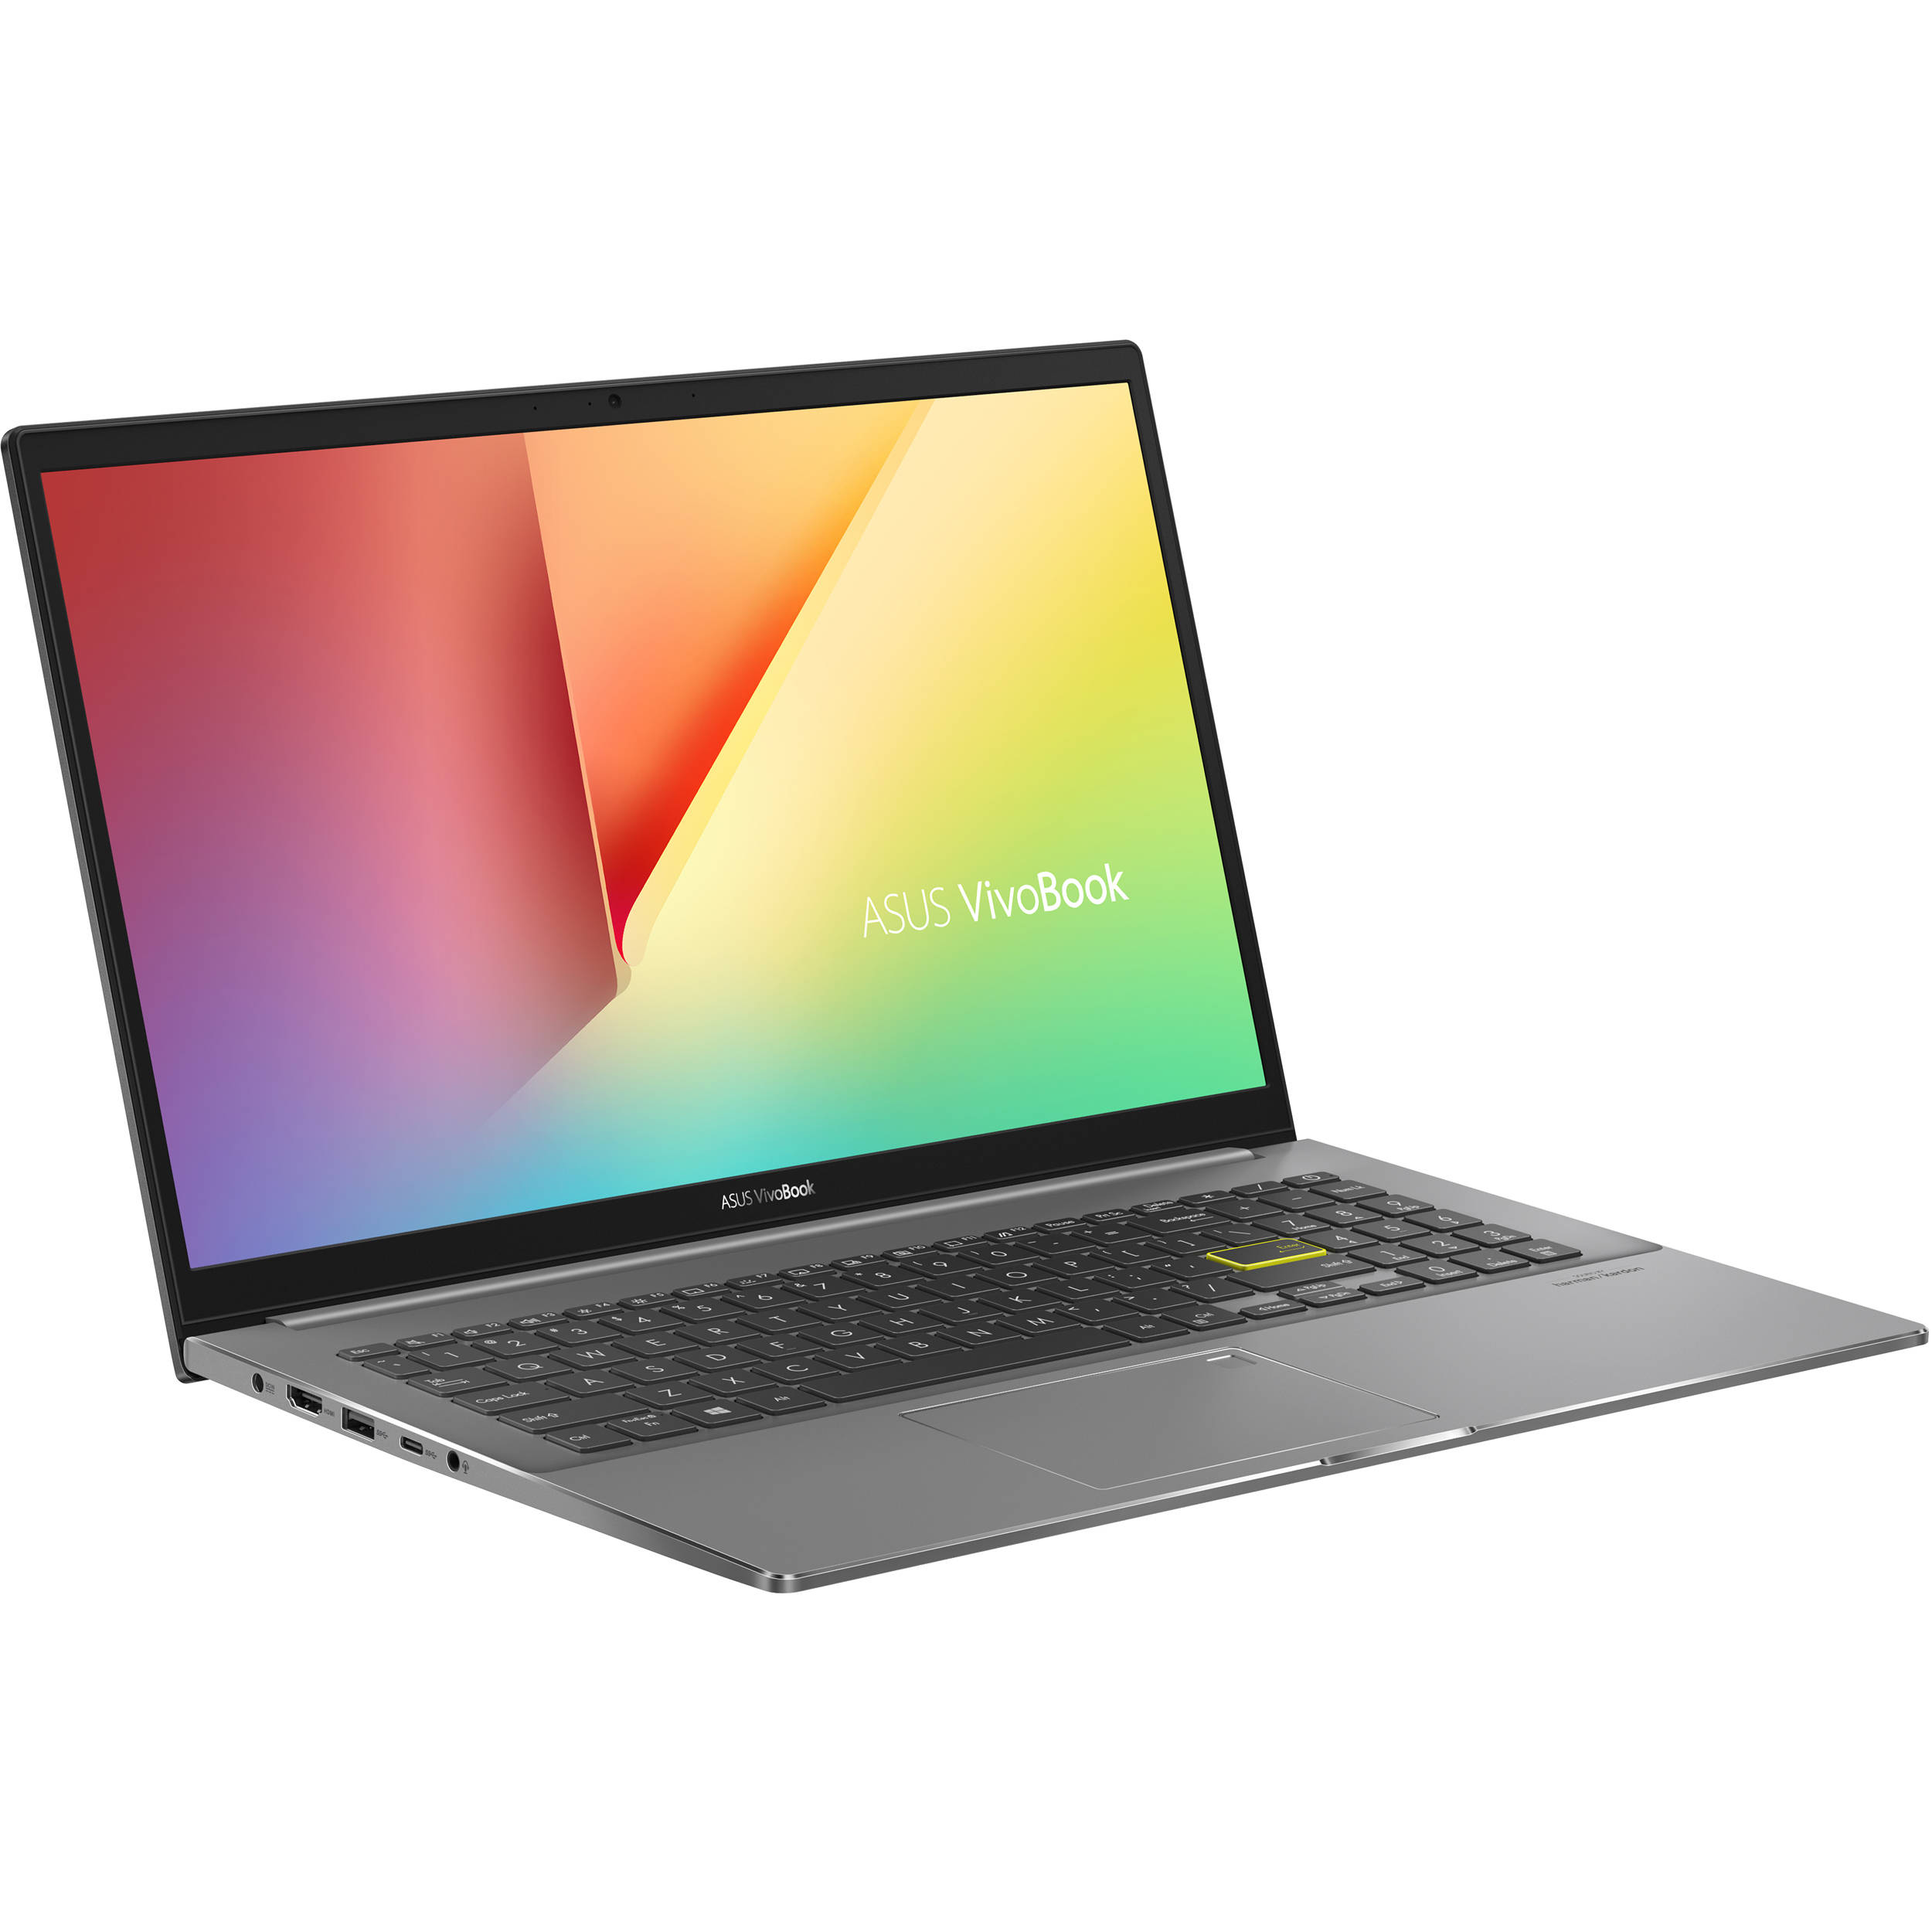 ASUS Vivobook Review